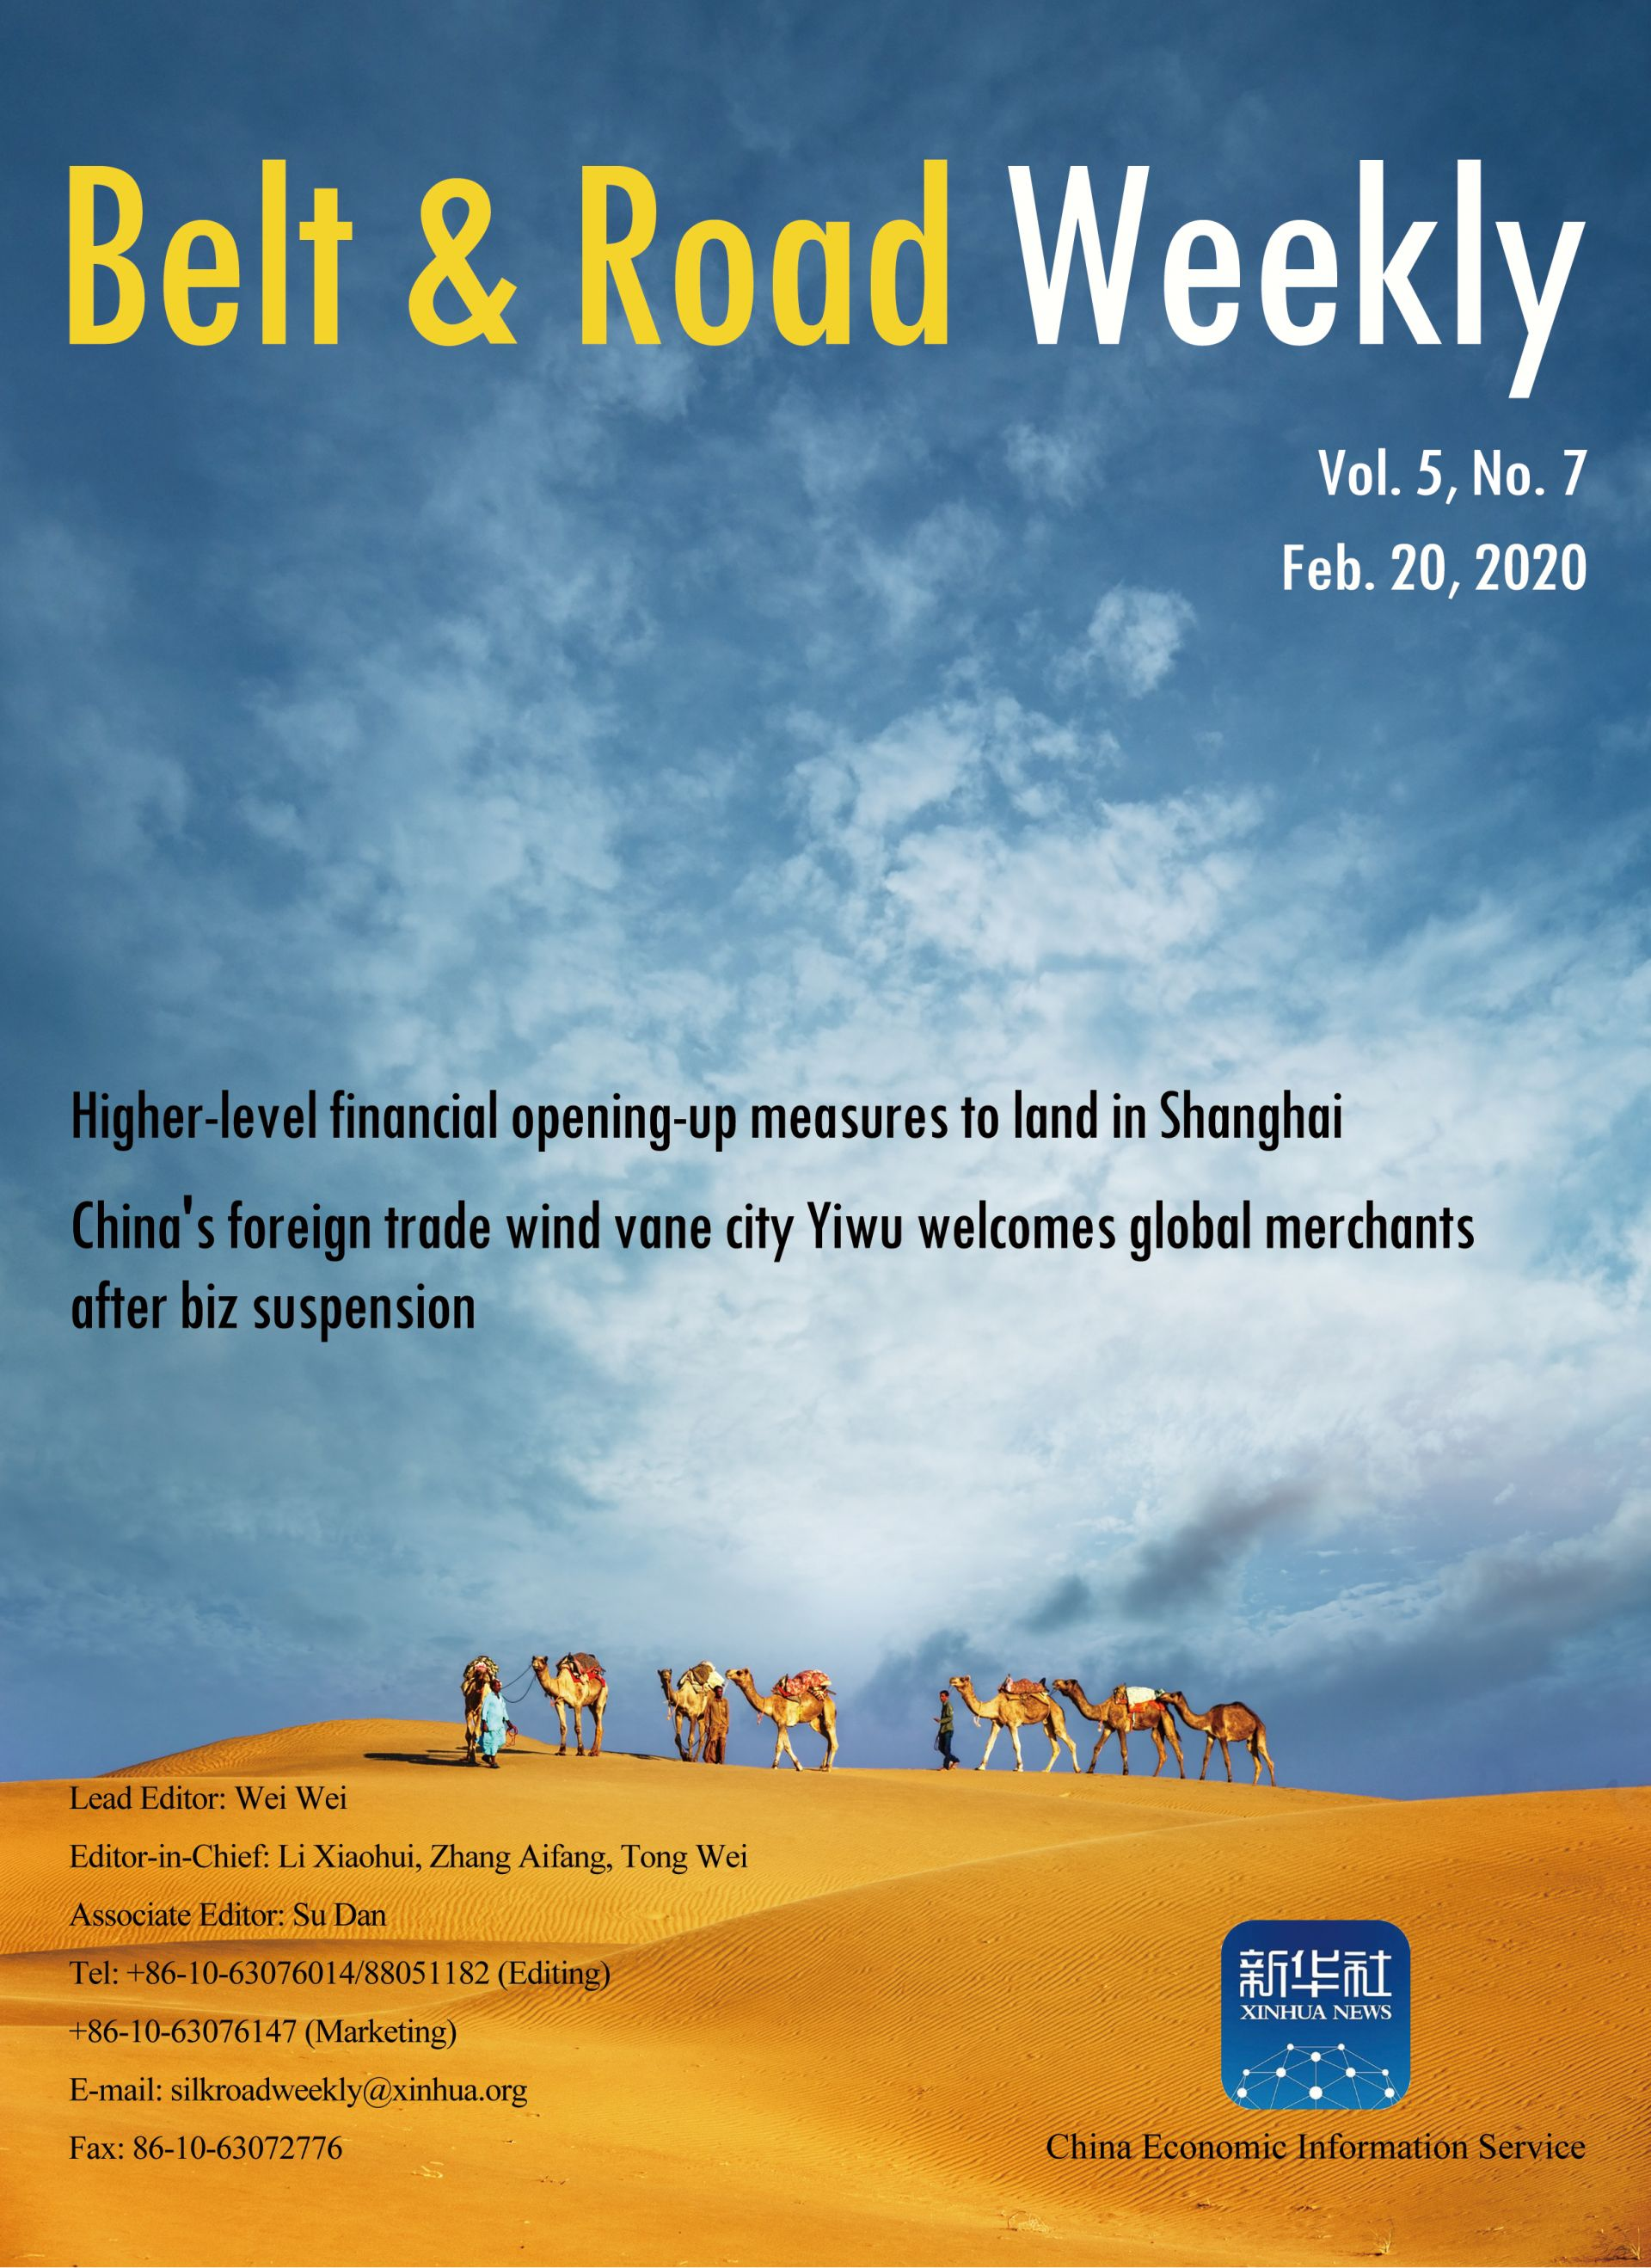 Belt & Road Weekly Vol. 5 No. 7